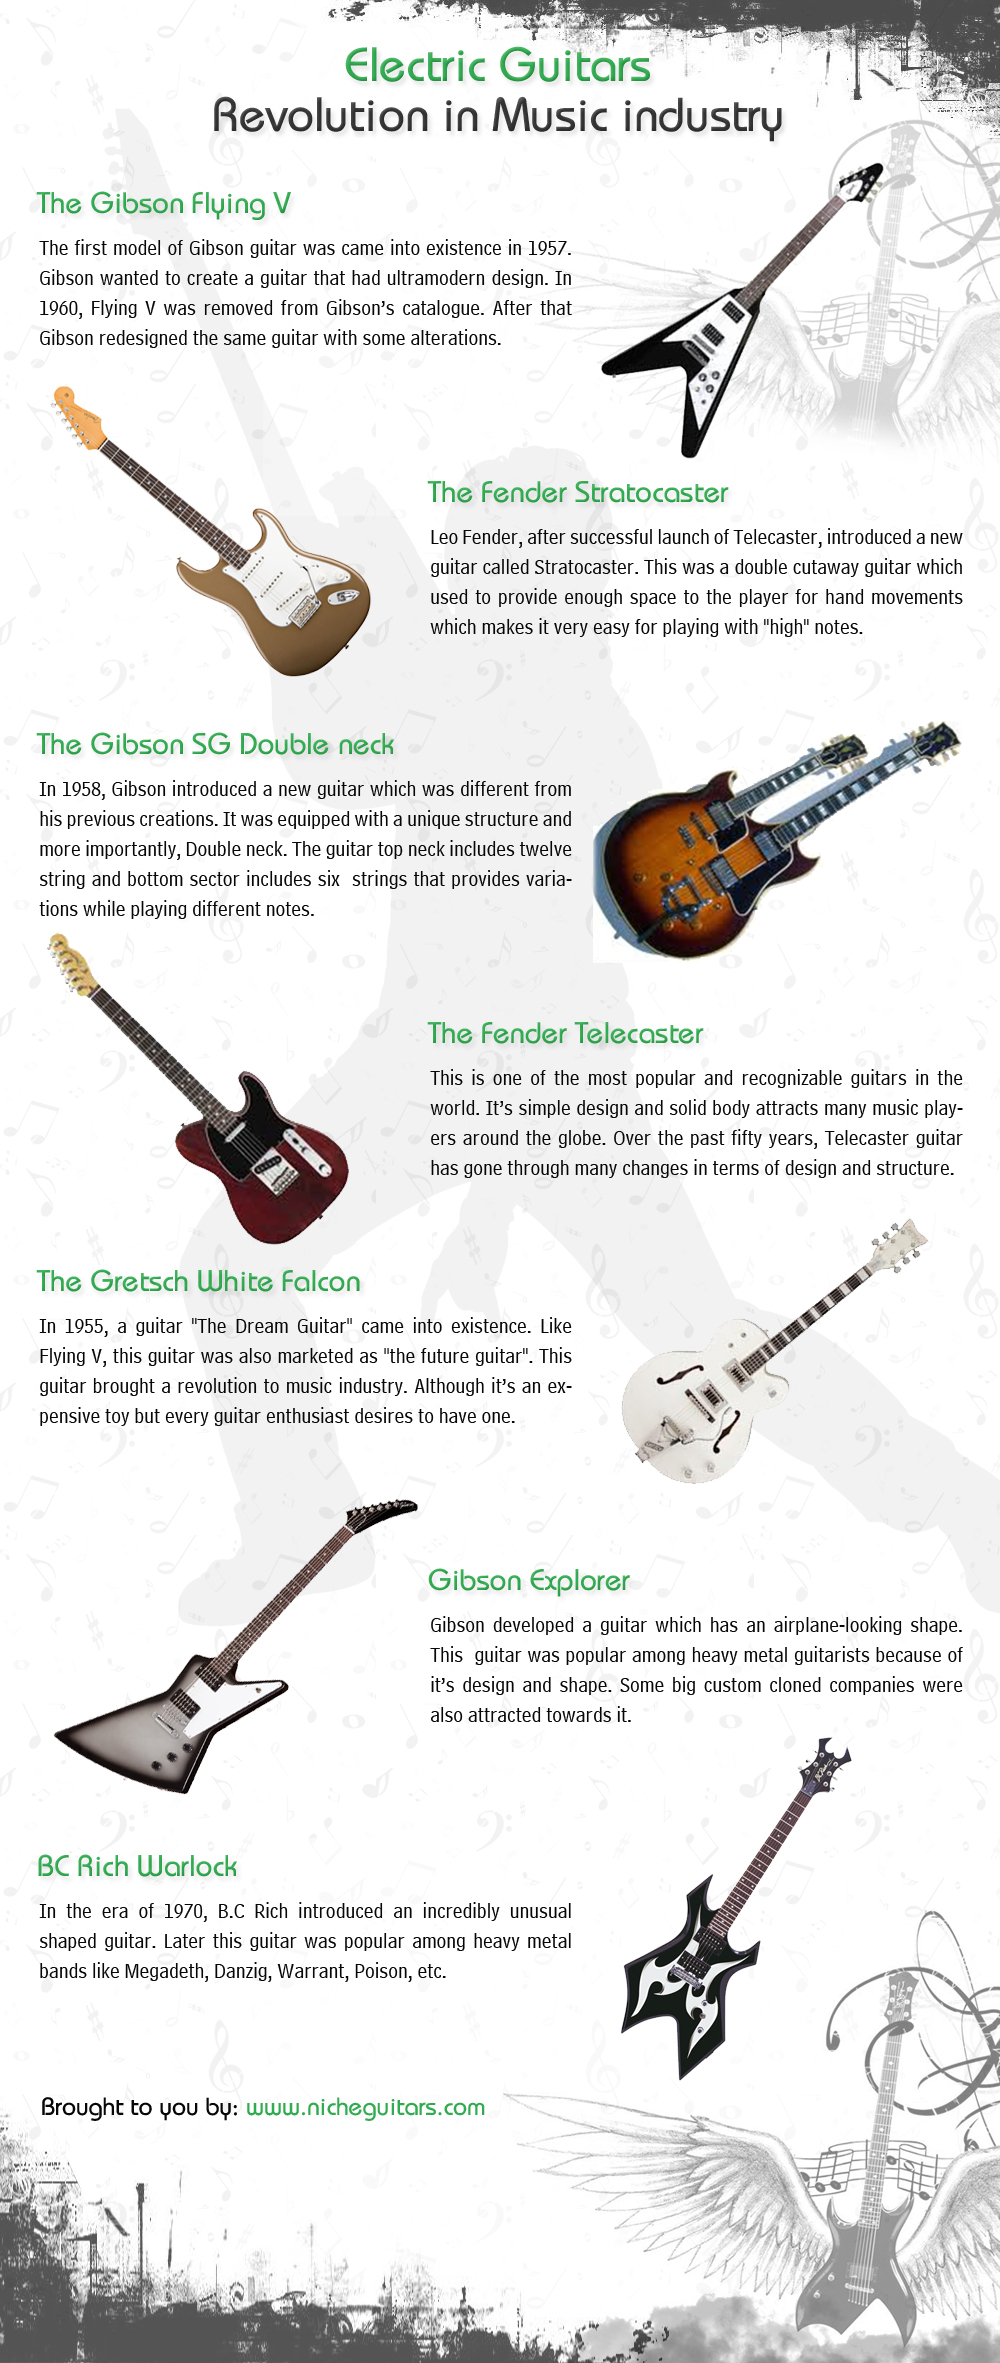 Electric Guitars - Revolution In Music Industry | Visual ly